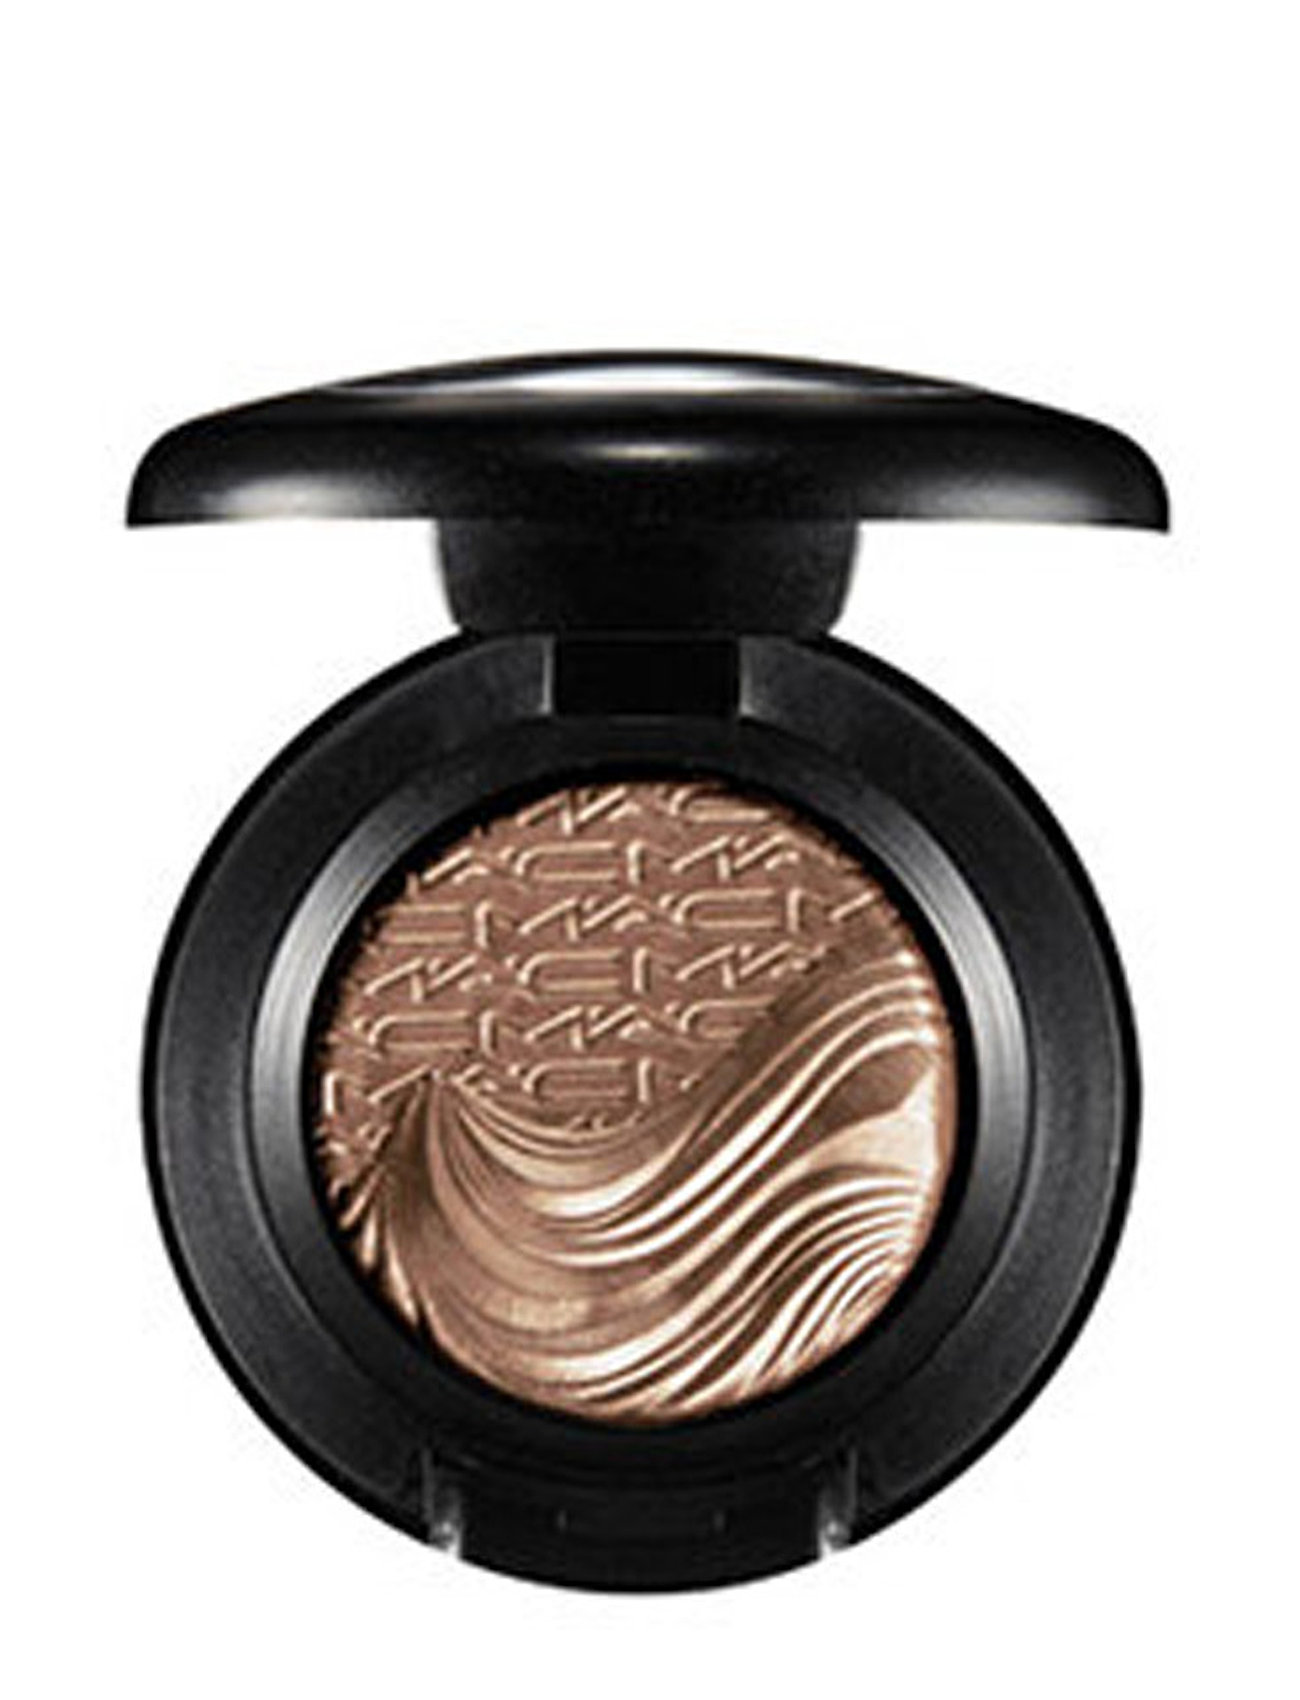 Image of Extra Dimension Sea Worship Beauty WOMEN Makeup Eyes Eyeshadow - Not Palettes Multi/mønstret M.A.C. (3484039951)